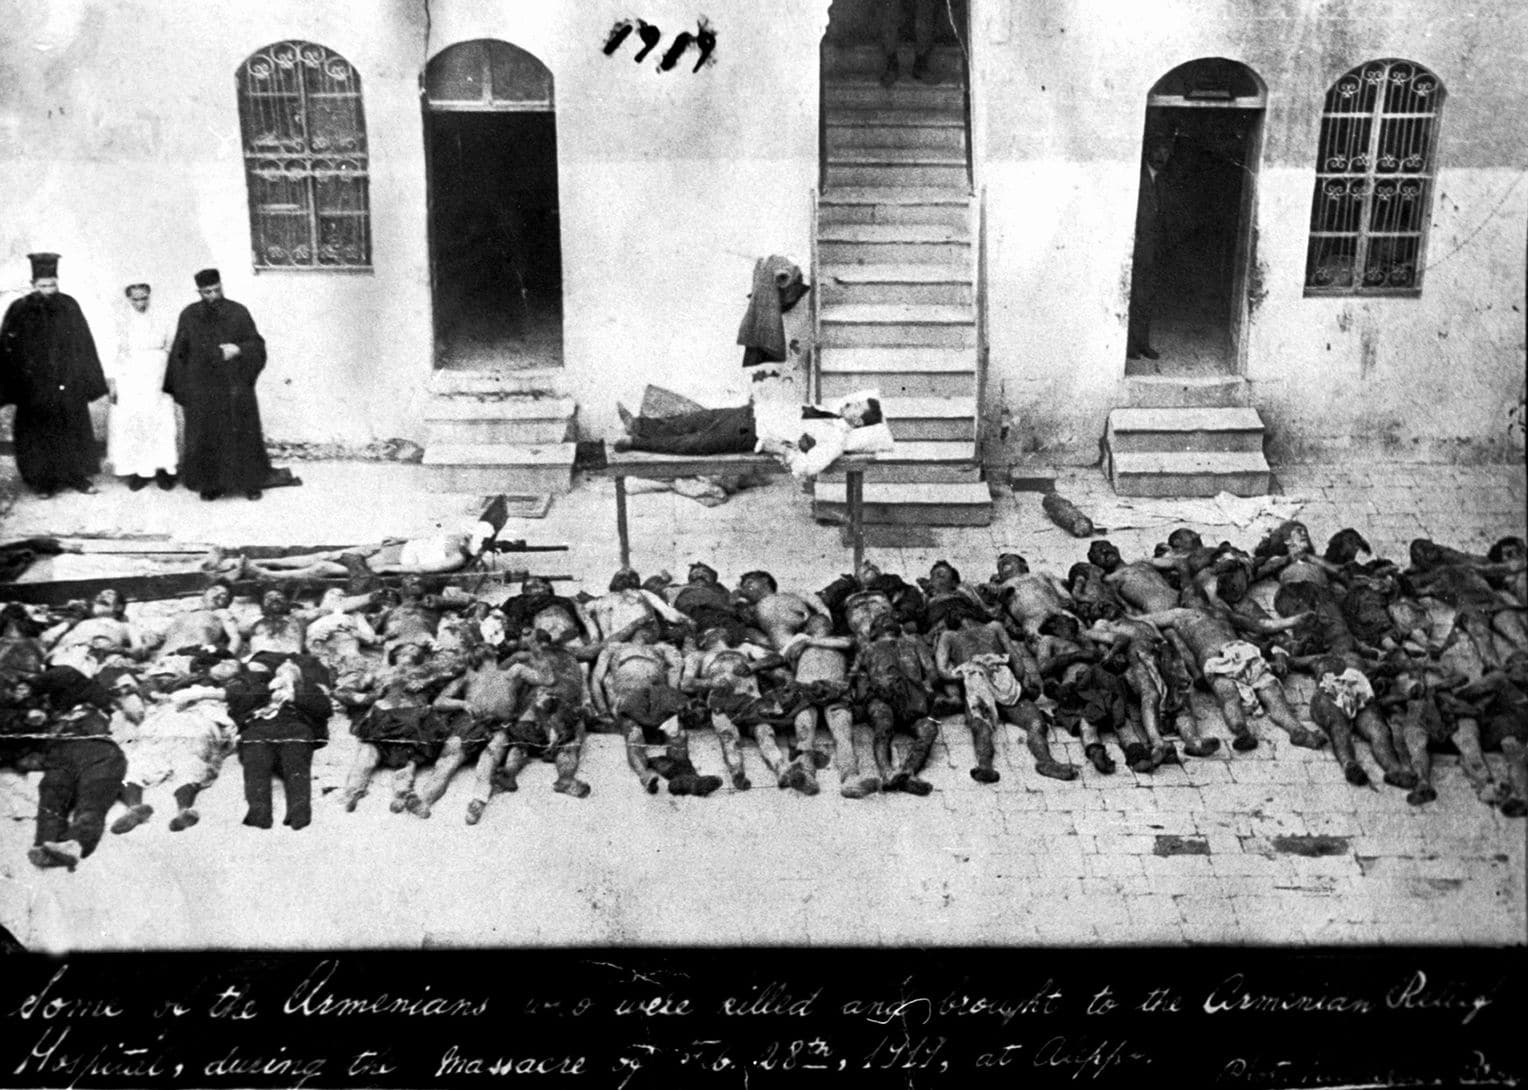 """Victims of the """"Great Slaughter"""" in the northern Syrian city of Aleppo, shown in a photo from 1919. Violence against Armenian centers in eastern regions of the dying Ottoman Empire spiked over the summer of 1915, beginning what historians consider to be the first genocide of the 20th century. AP/ Armenian National Archives."""